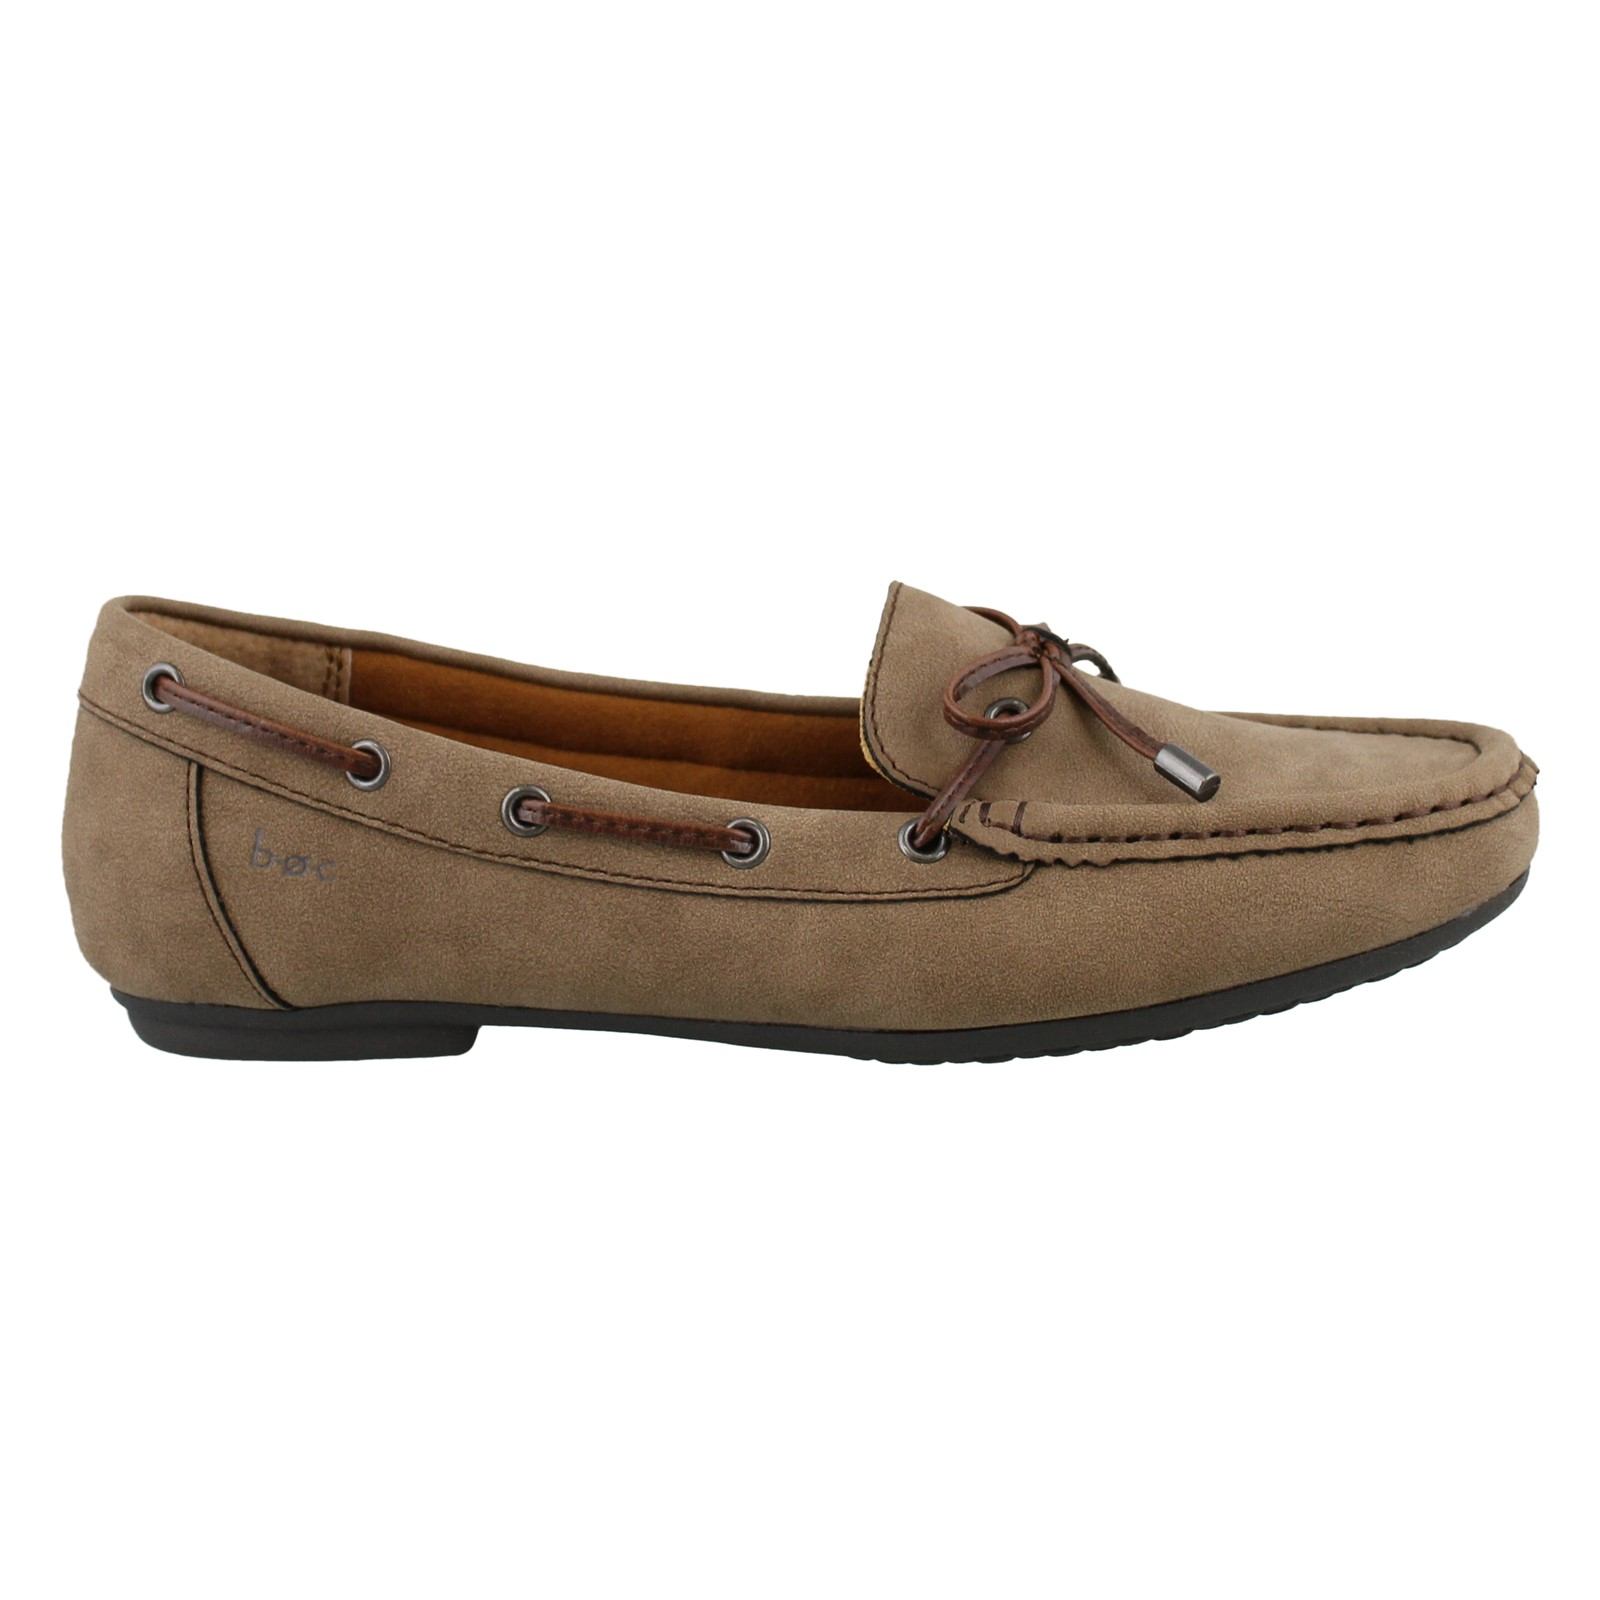 Women's B.O.C, Carolann Slip on Shoes